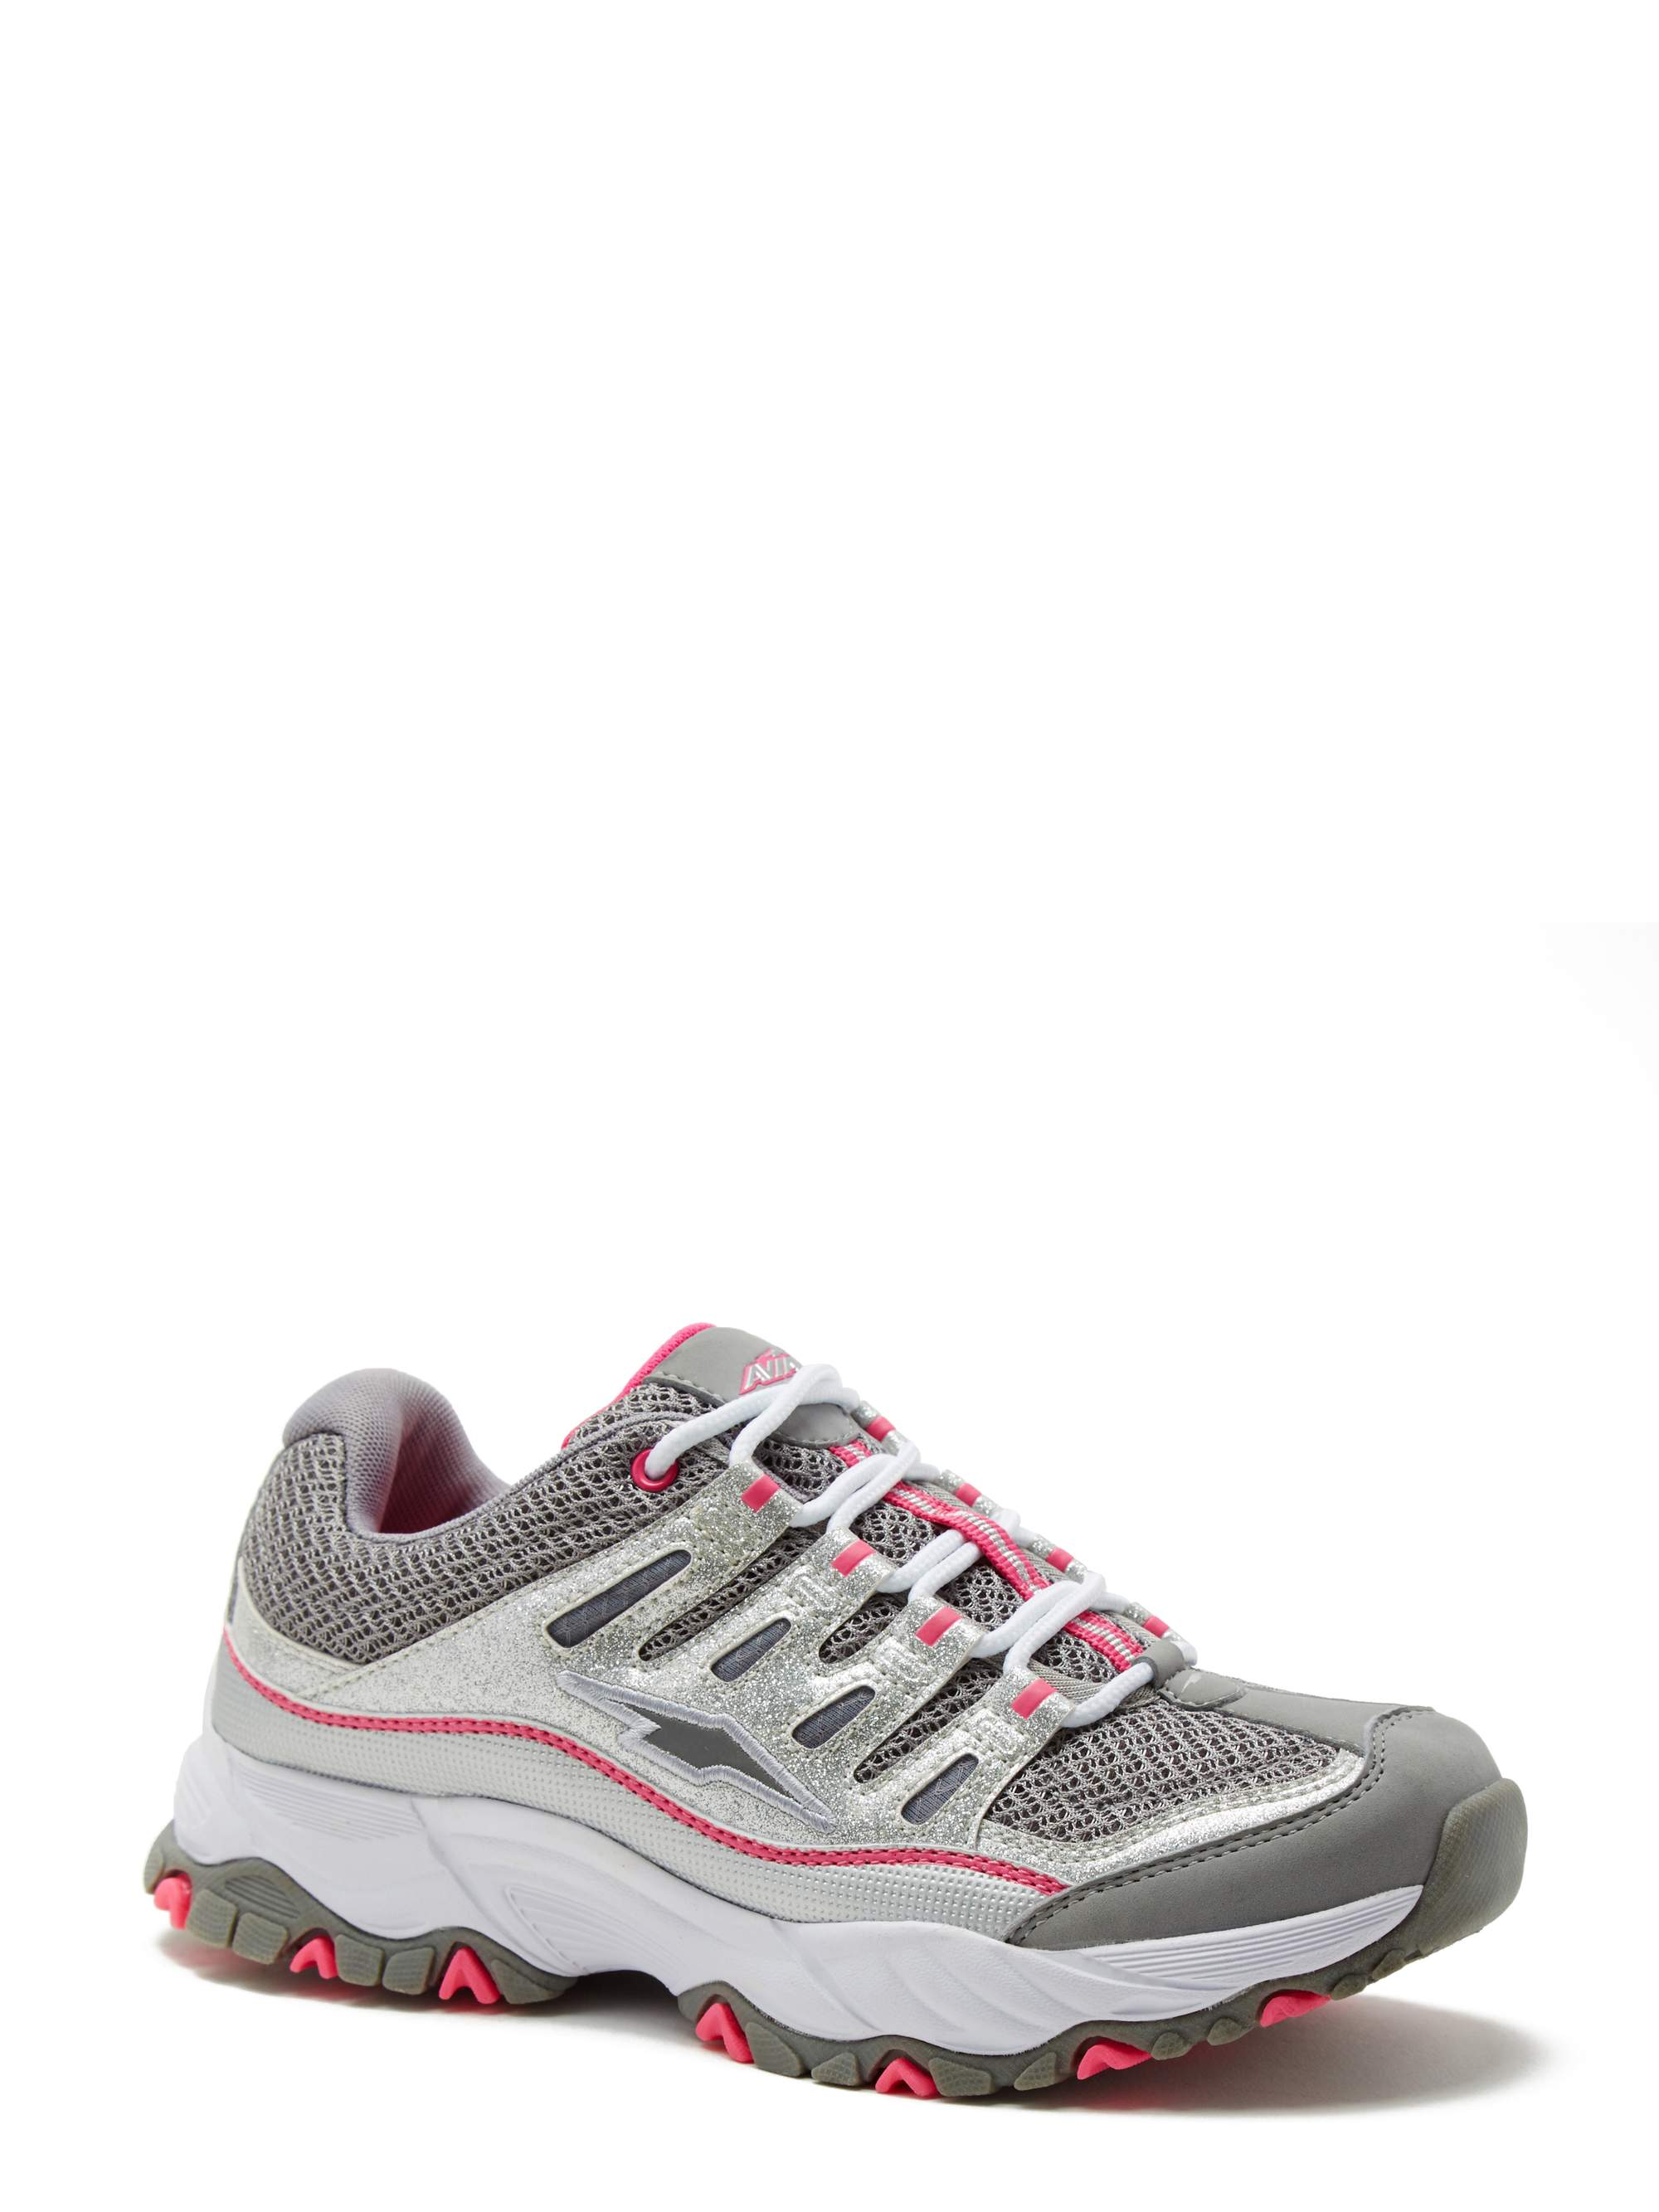 Avia Women's Elevate Athletic Shoe by